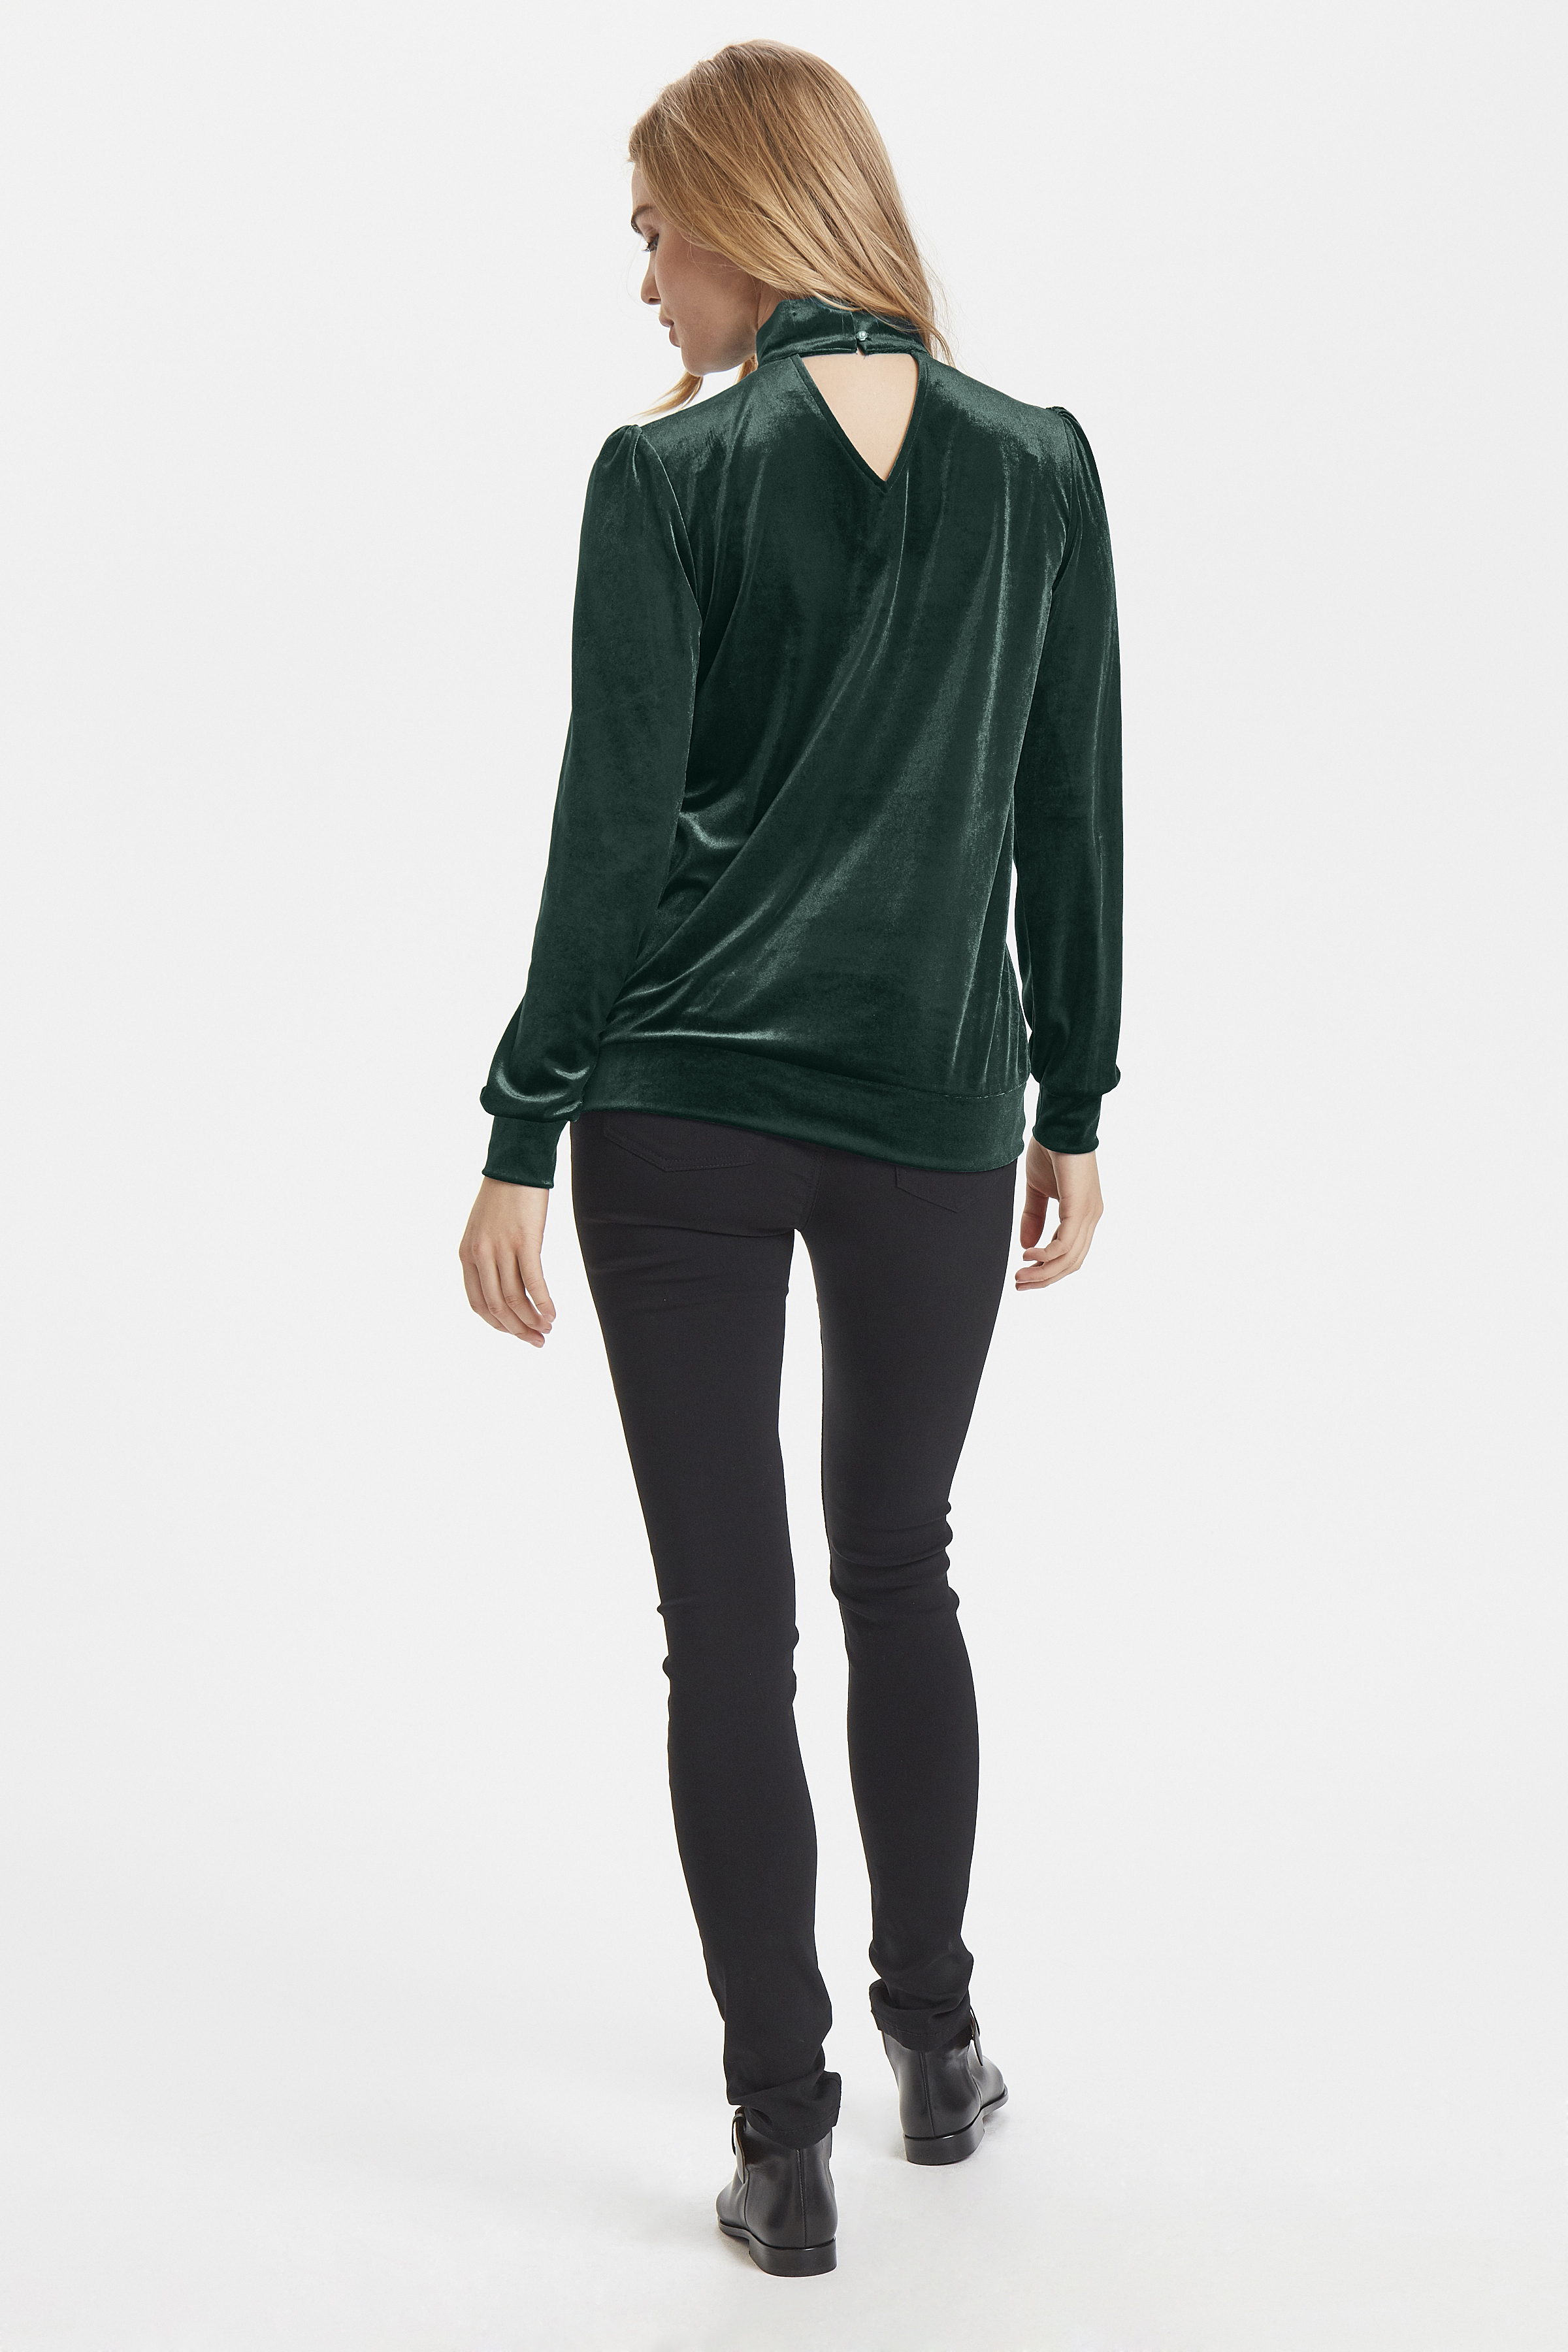 Majestic Green Knitted pullover from b.young – Buy Majestic Green Knitted pullover from size XS-XL here